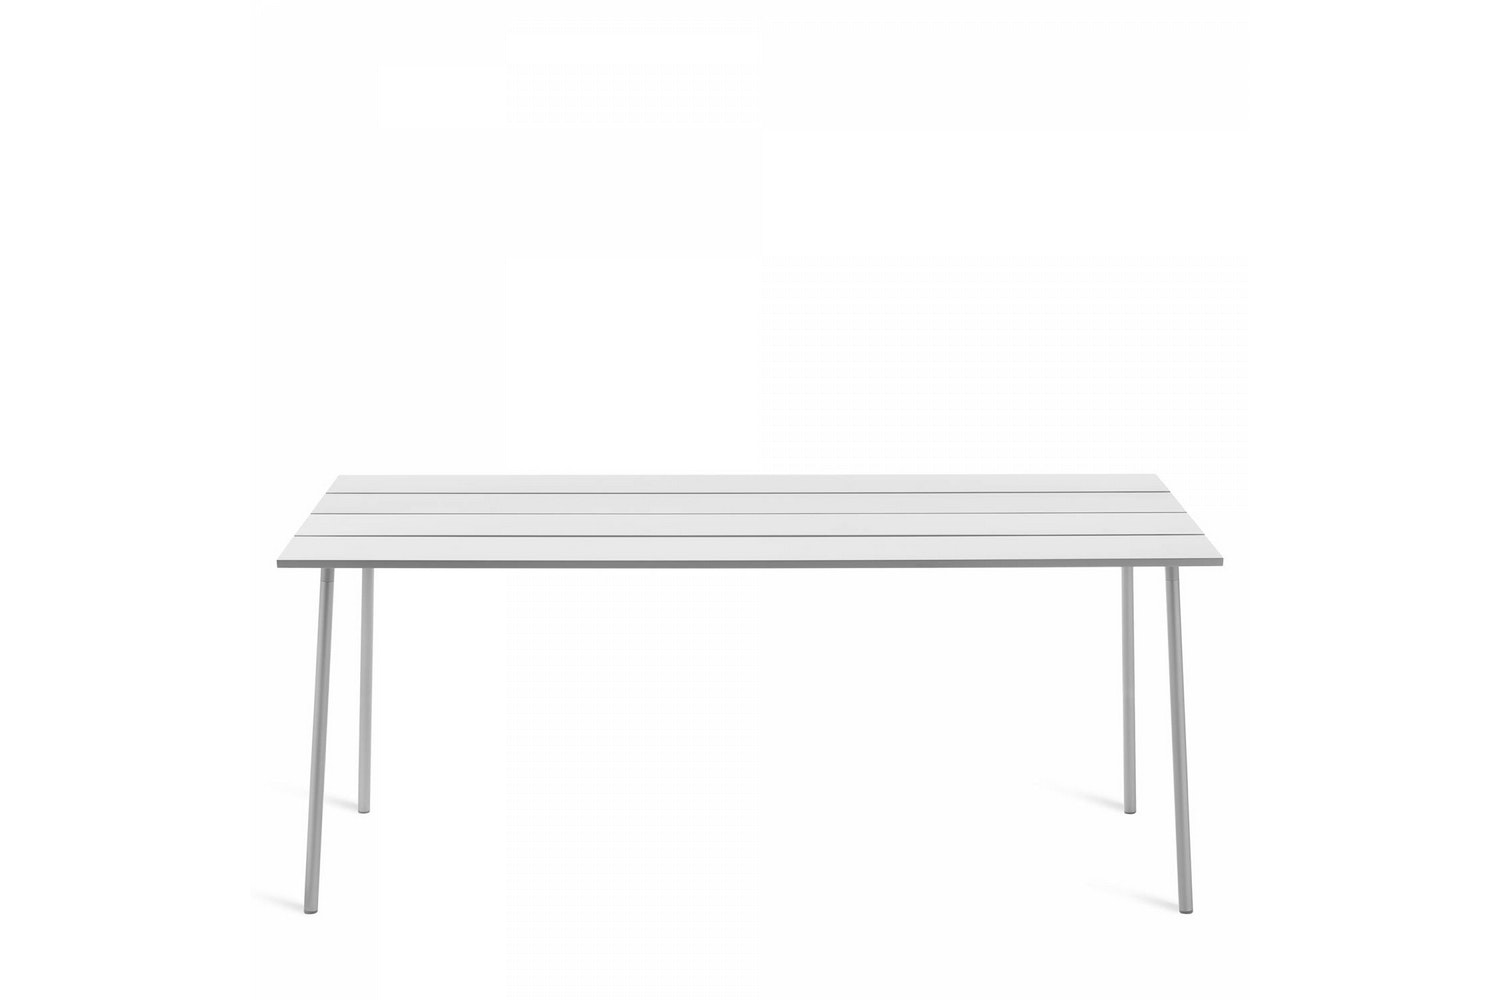 Run Table by Sam Hecht and Kim Colin for Emeco